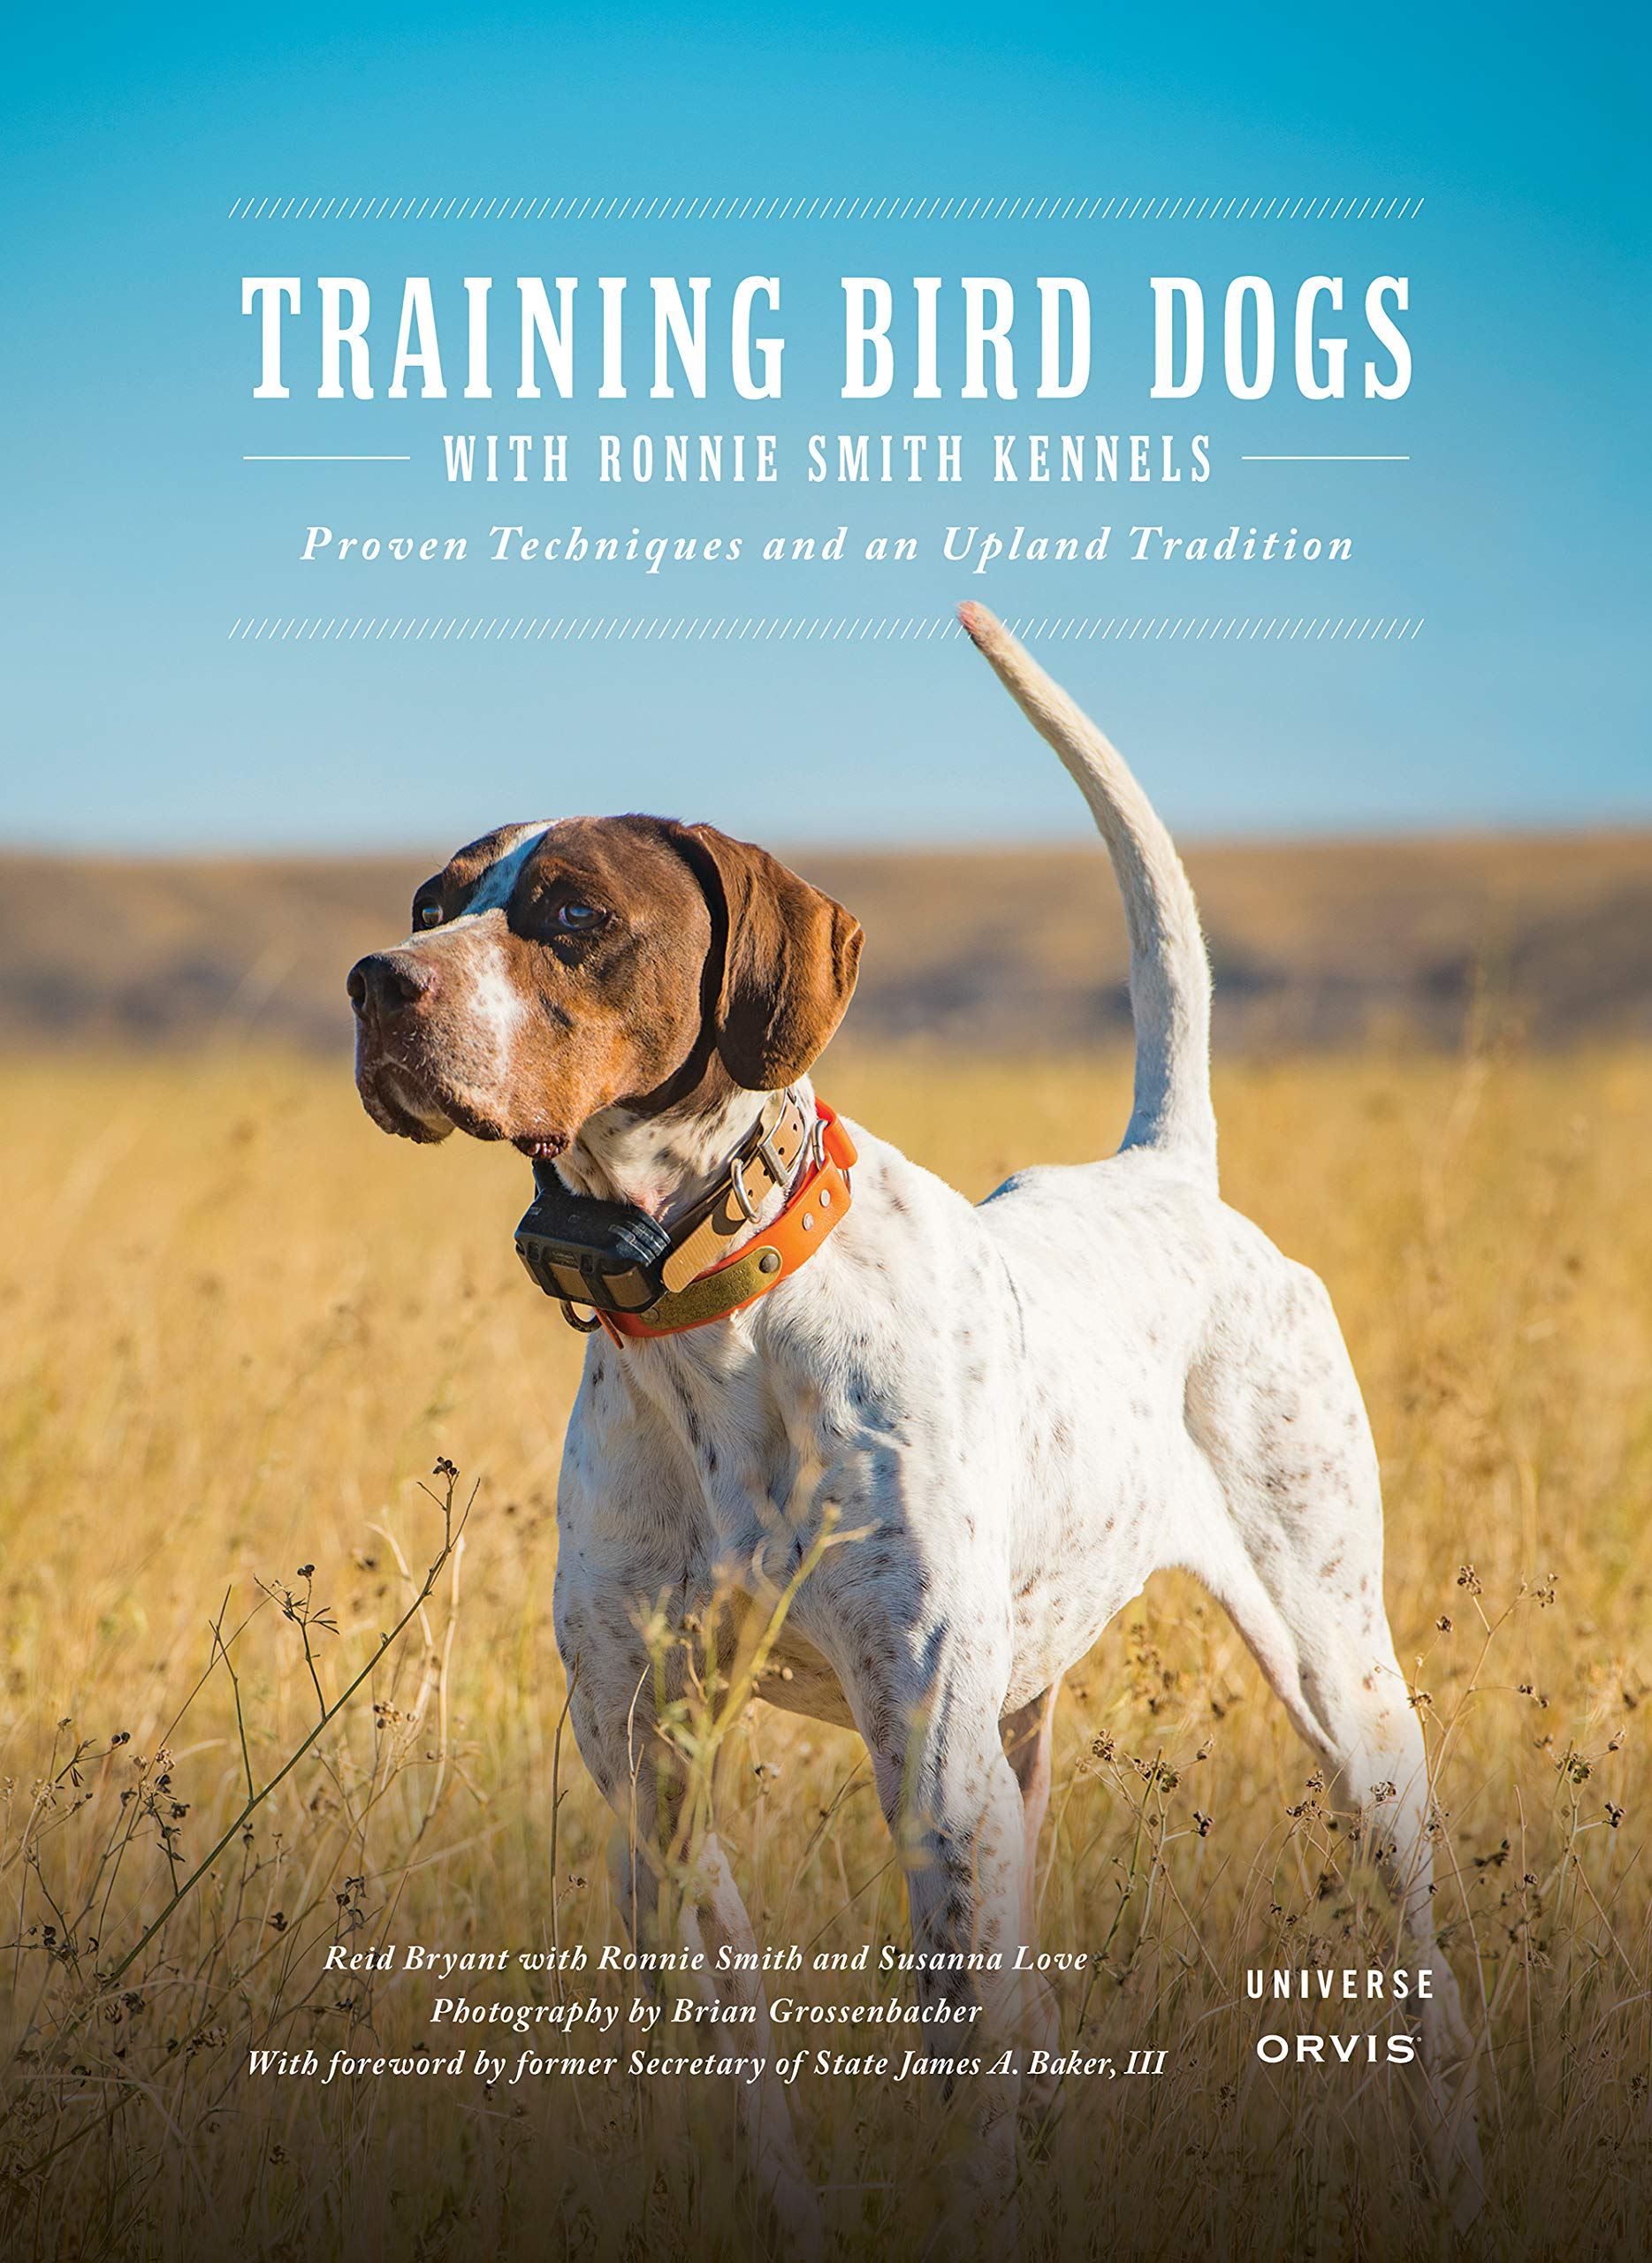 Training Bird Dogs with Ronnie Smith Kennels: Proven Techniques and an Upland Tradition by Universe